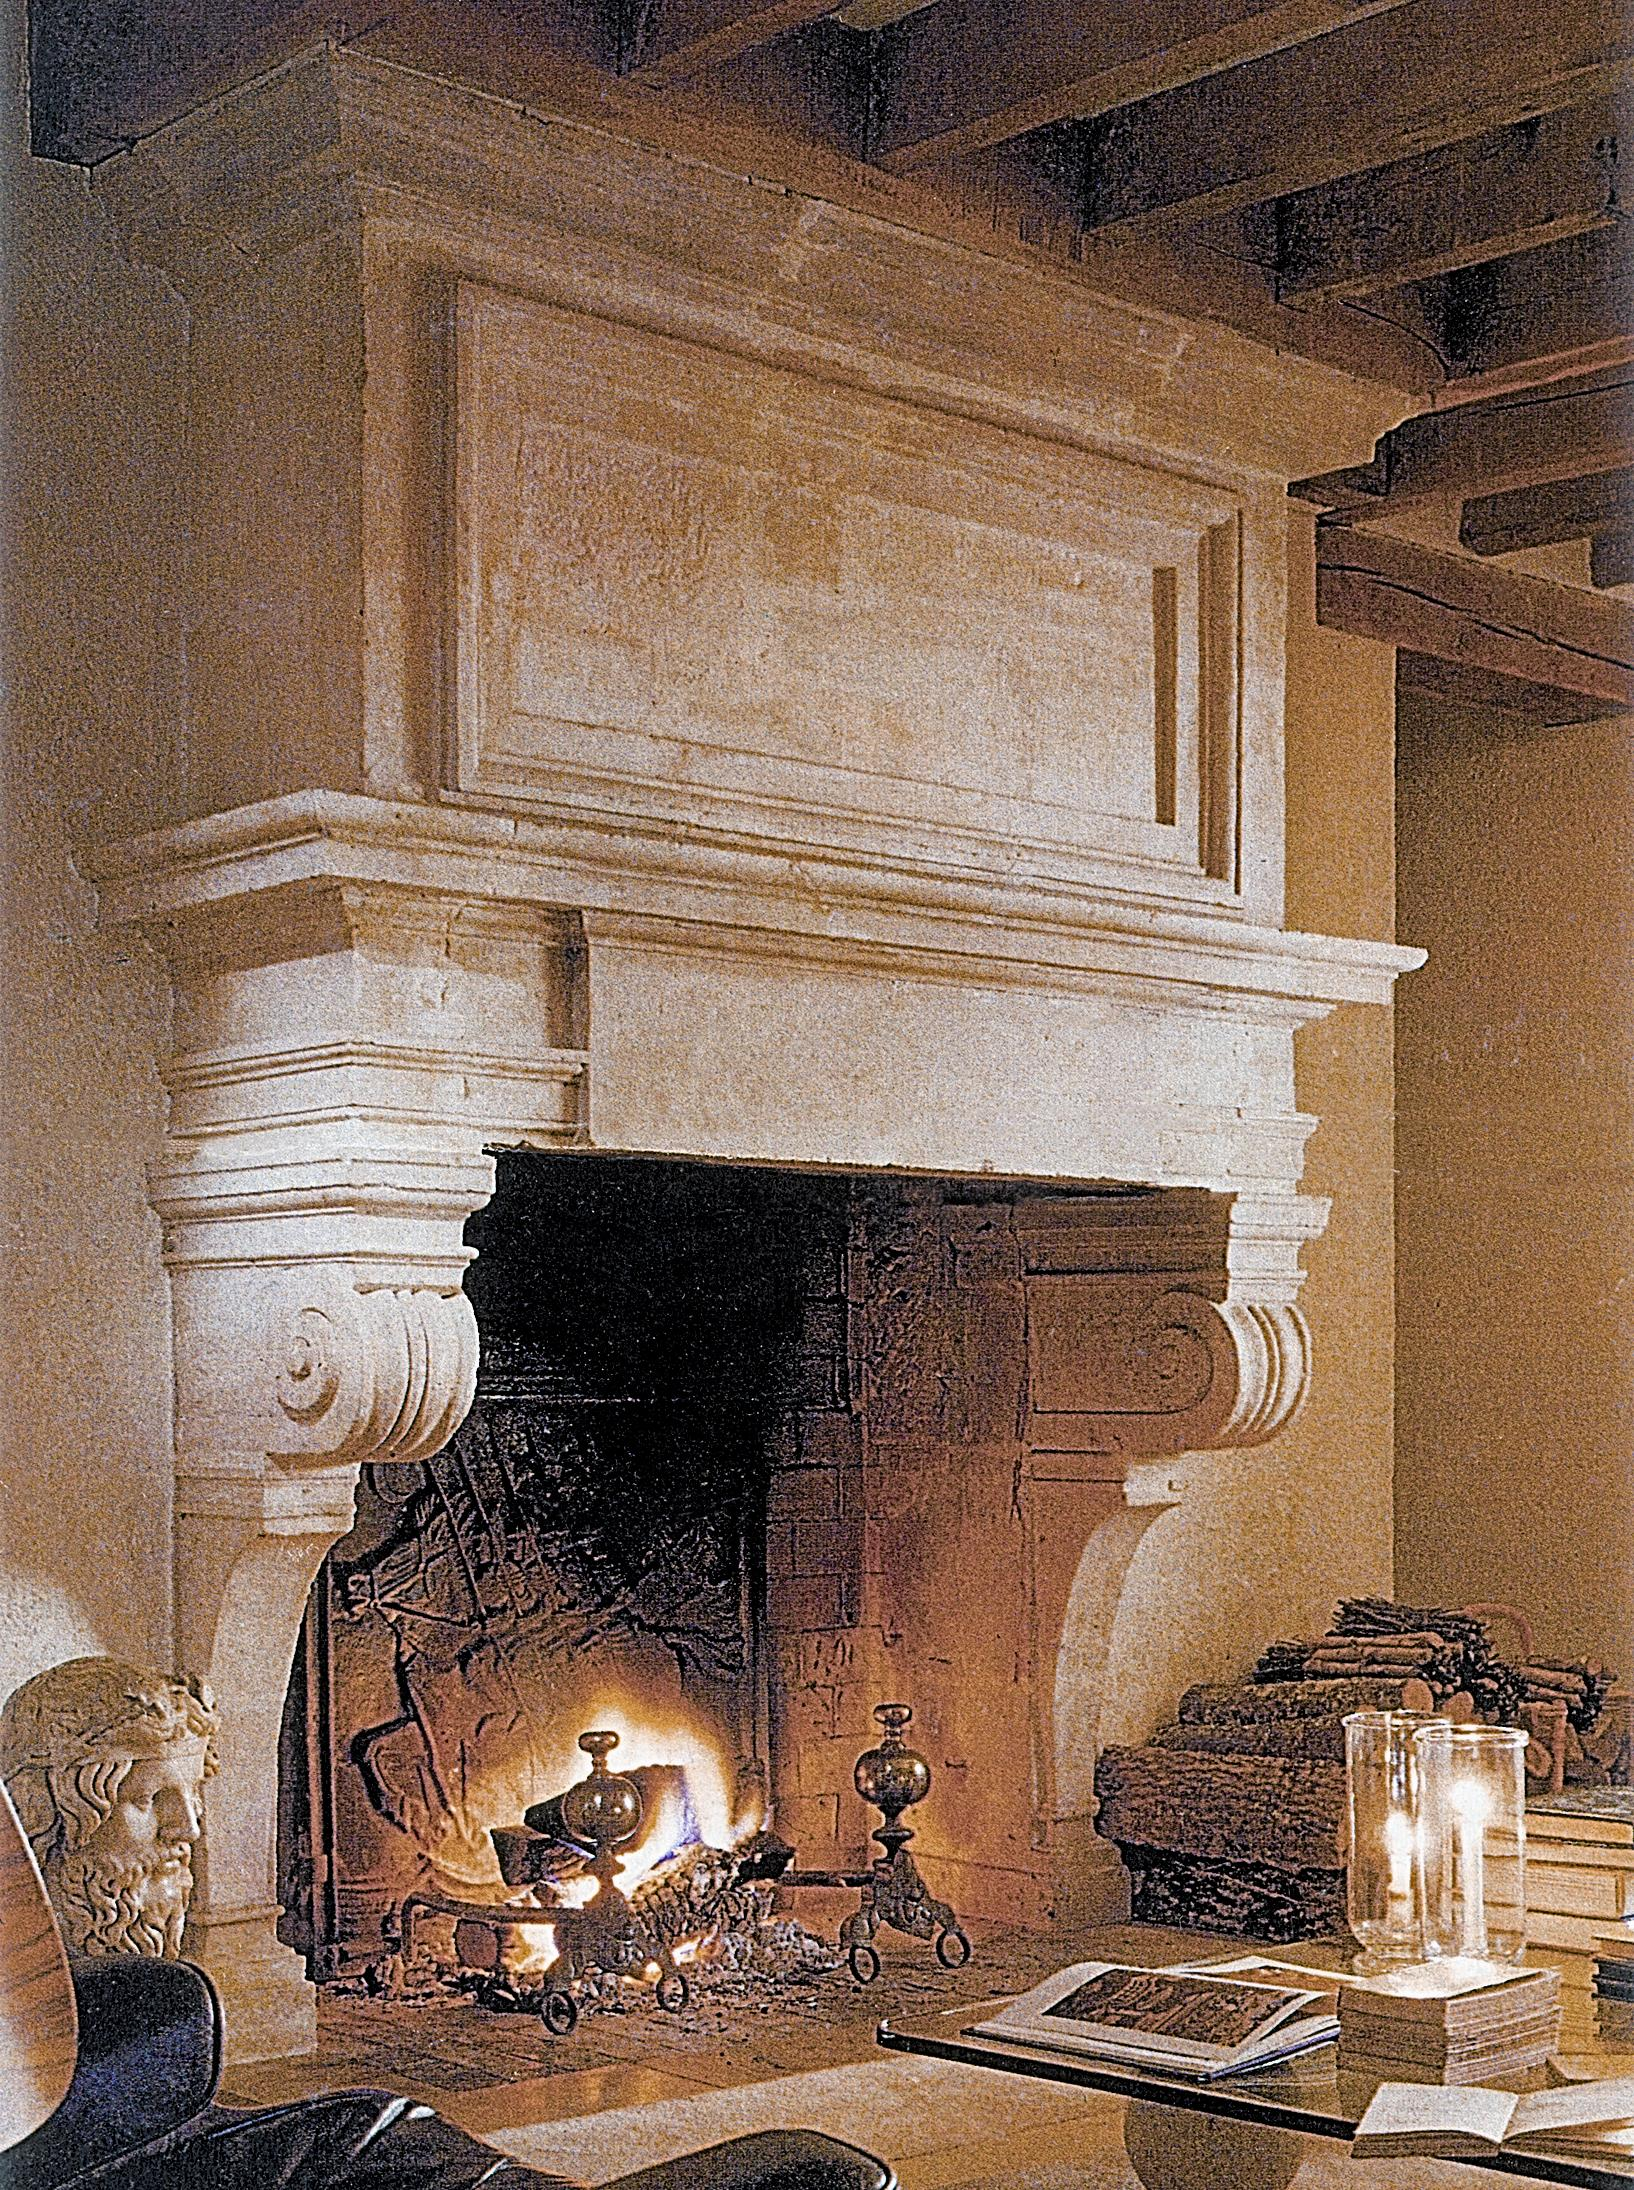 Stone age designs custom scagliola stone formula replaces - Stone fireplace surround ideas ...